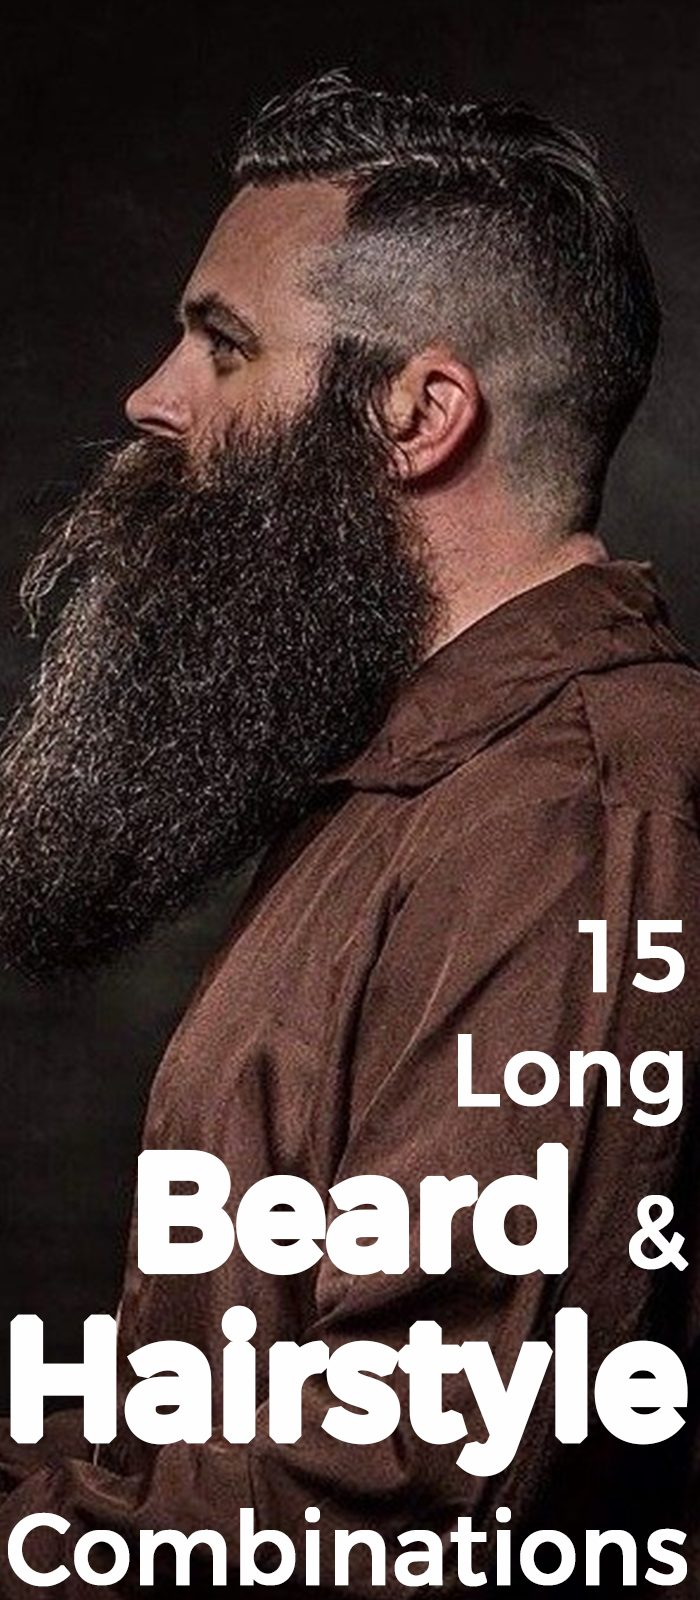 15 Long Beard And Hairstyle Combinations!